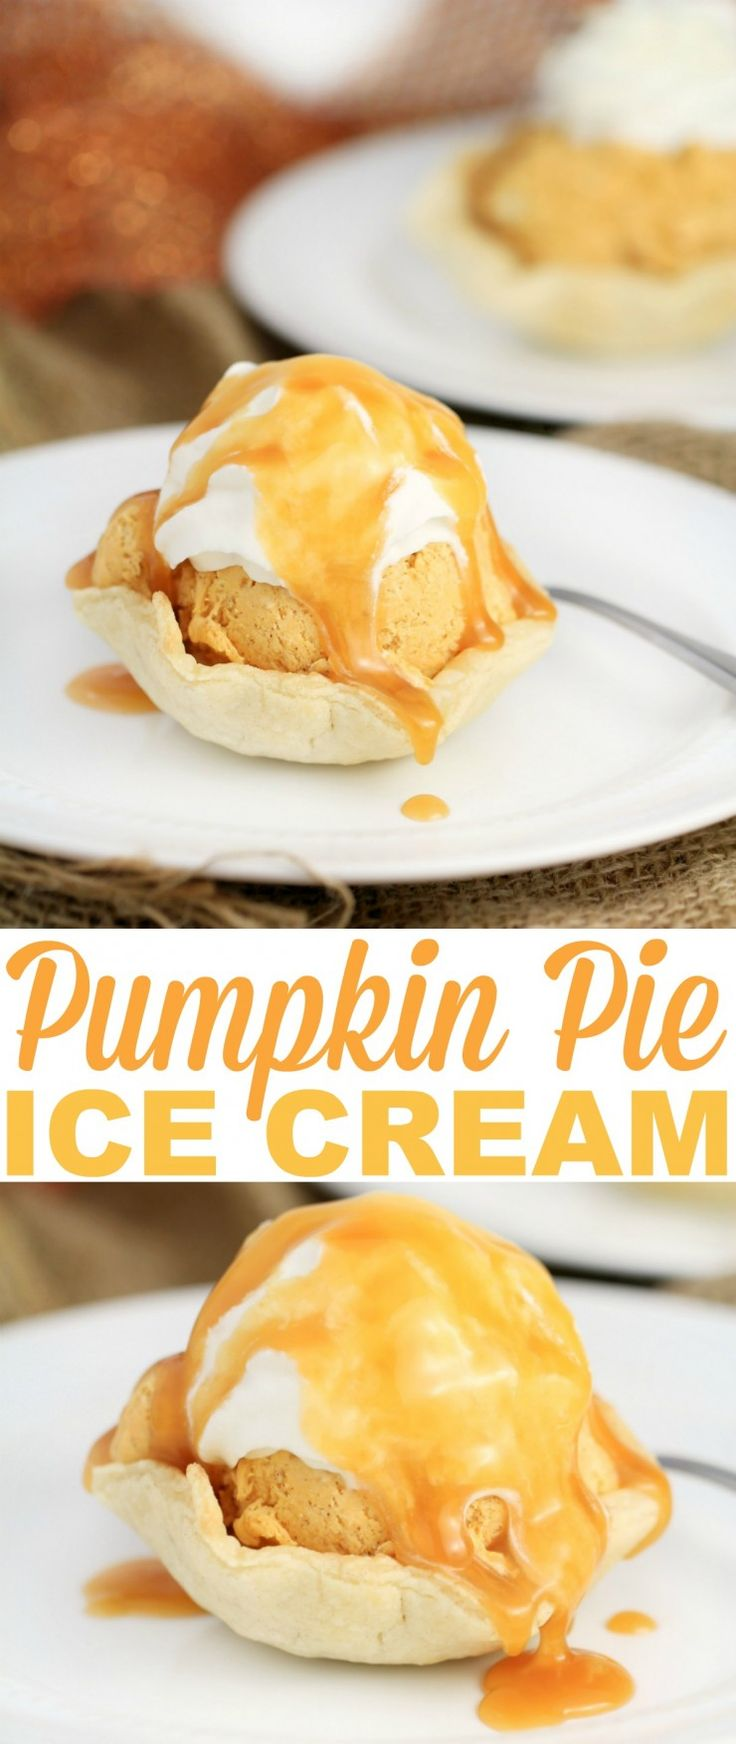 Pumpkin Pie is a crowd favourite and this delicious No-Churn Pumpkin Spice Ice Cream recipe is served in flaky pastry bowls. This cold dessert is perfectly creamy and tastes just like pumpkin pie.